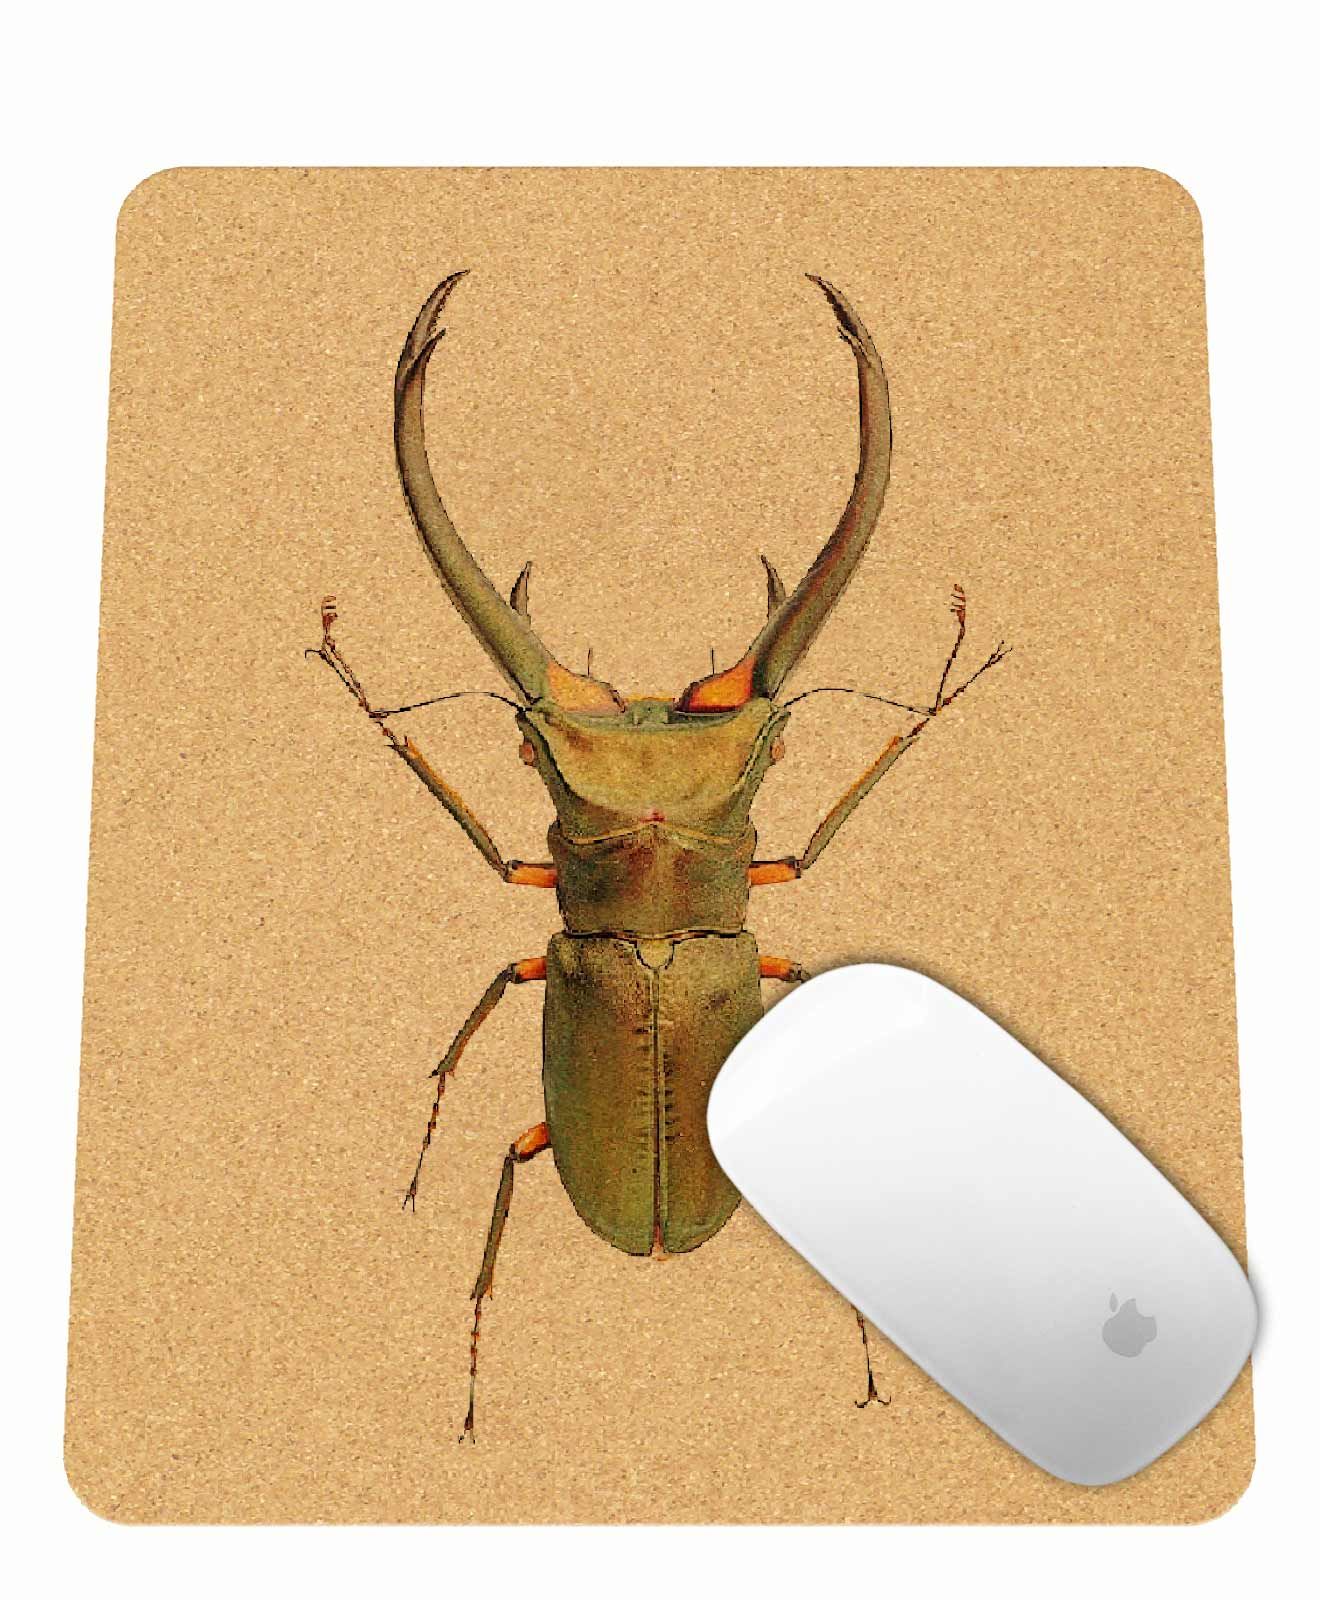 thursday Bug Cork Mousepad rectangular